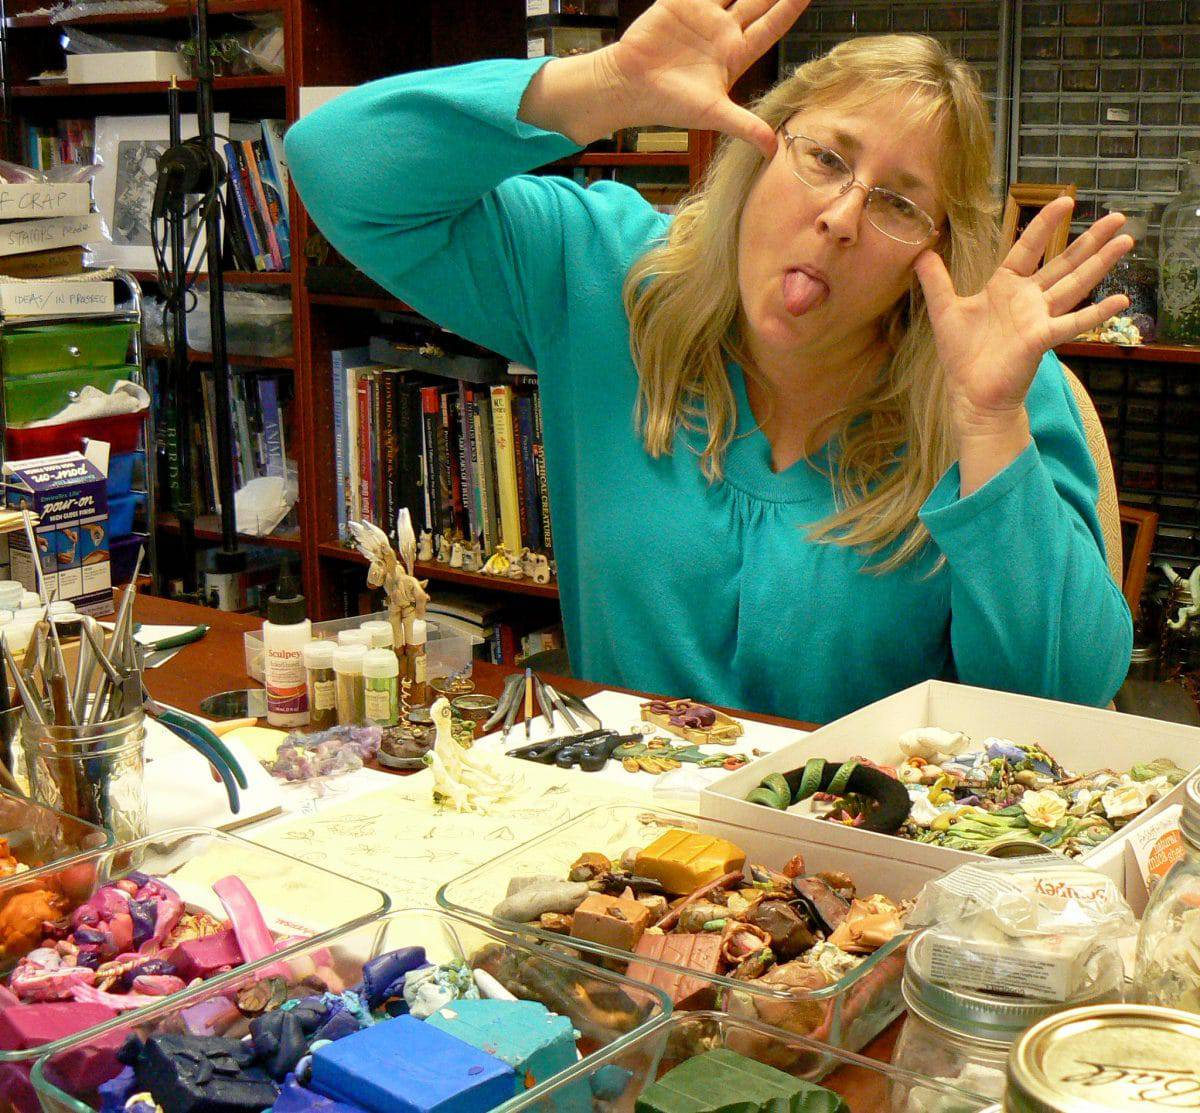 Mary Ellen Beads talks with Christi Friesen, polymer clay artist, about creativity.